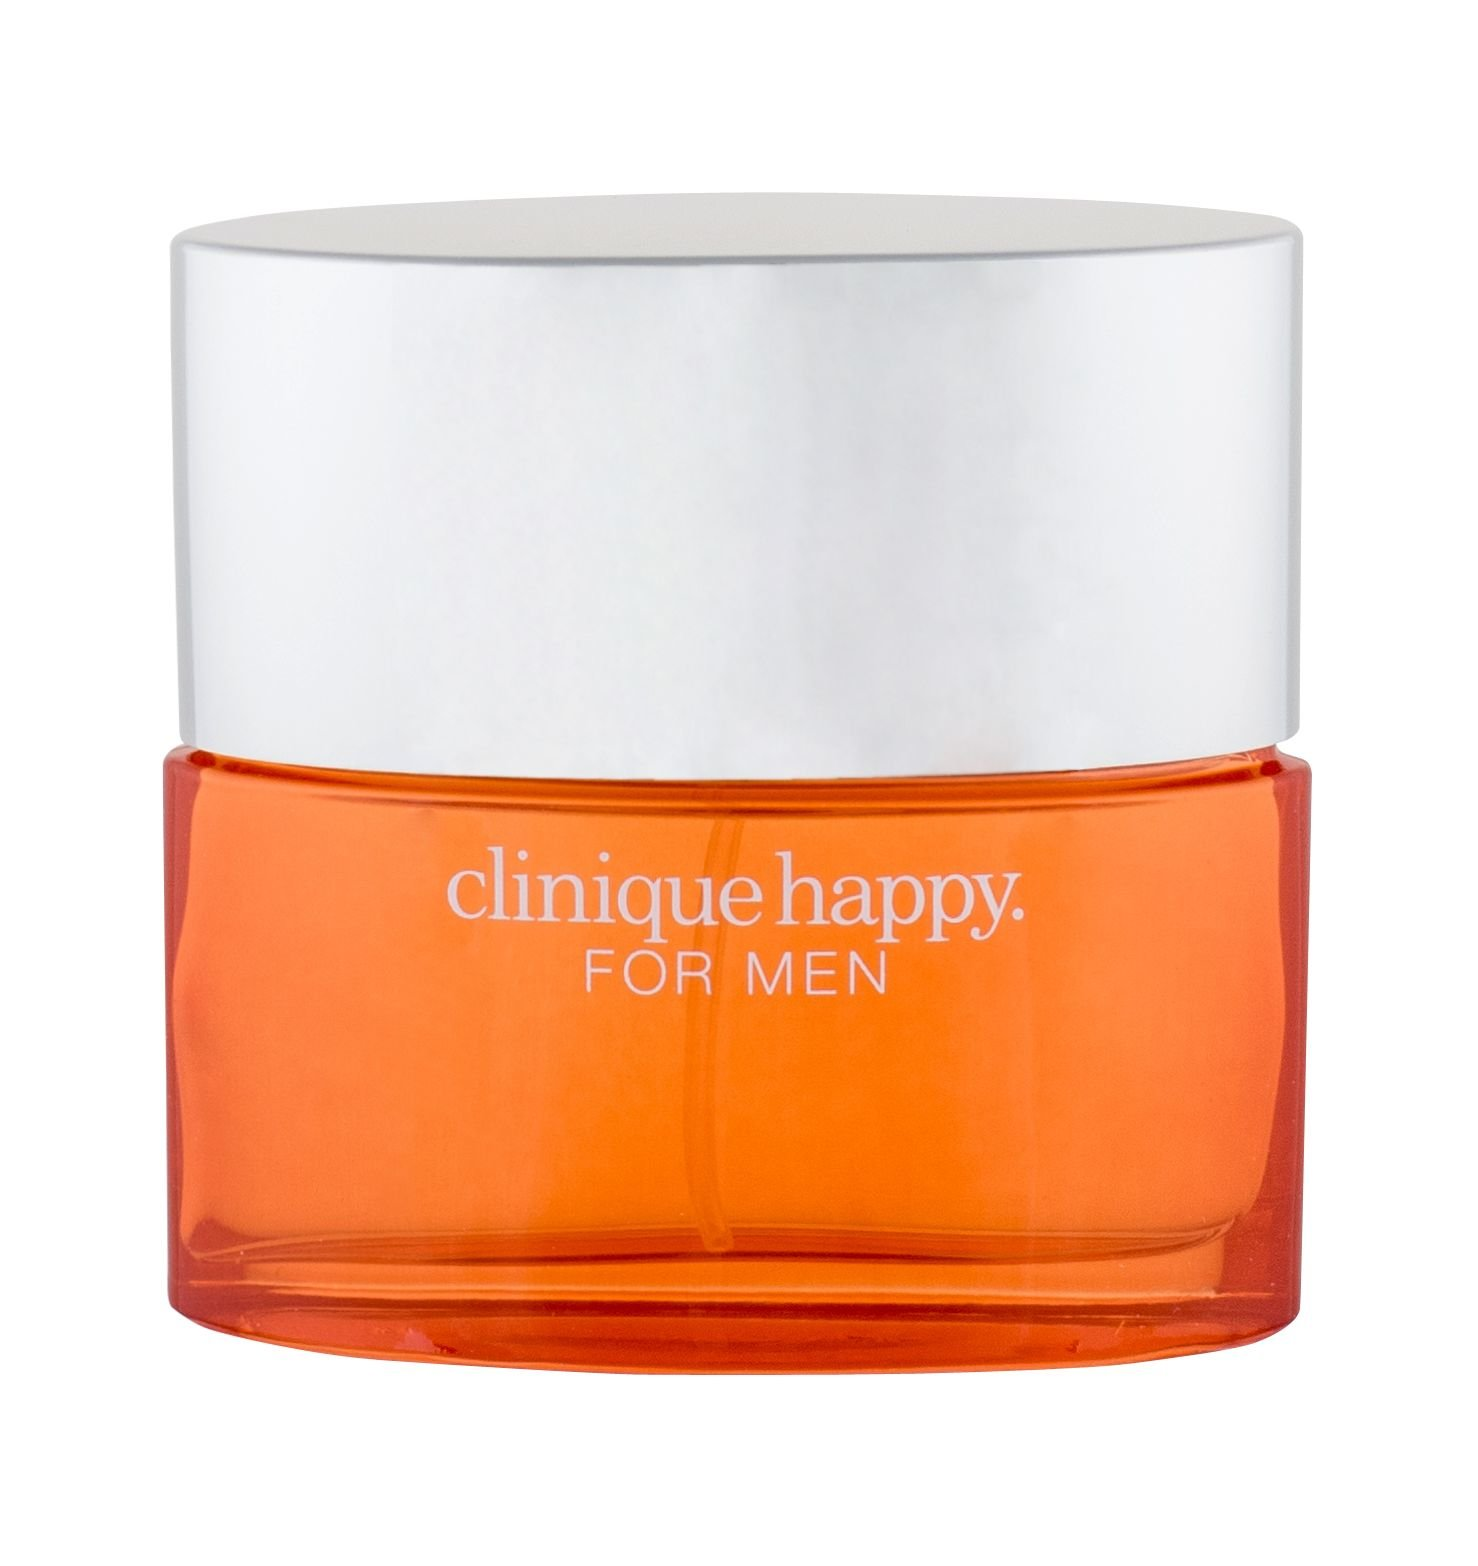 Clinique Happy For Men Cologne 50ml